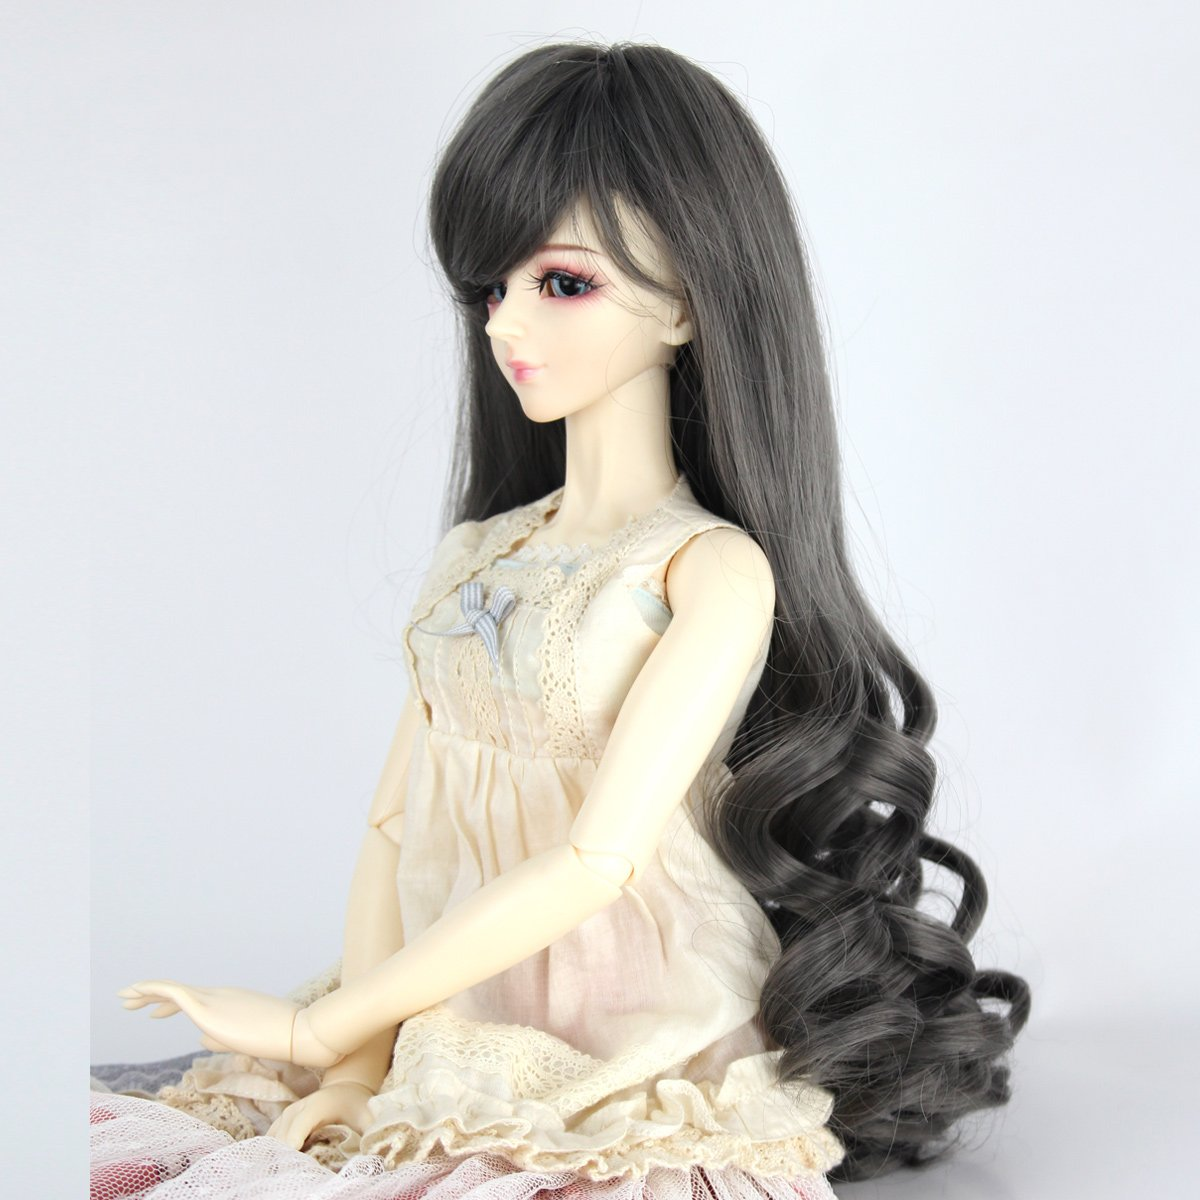 Miss U Hair 9-10 Inch 1//3 BJD MSD DOD Pullip Dollfie Doll Wig Long Curly Hair Not for Human White